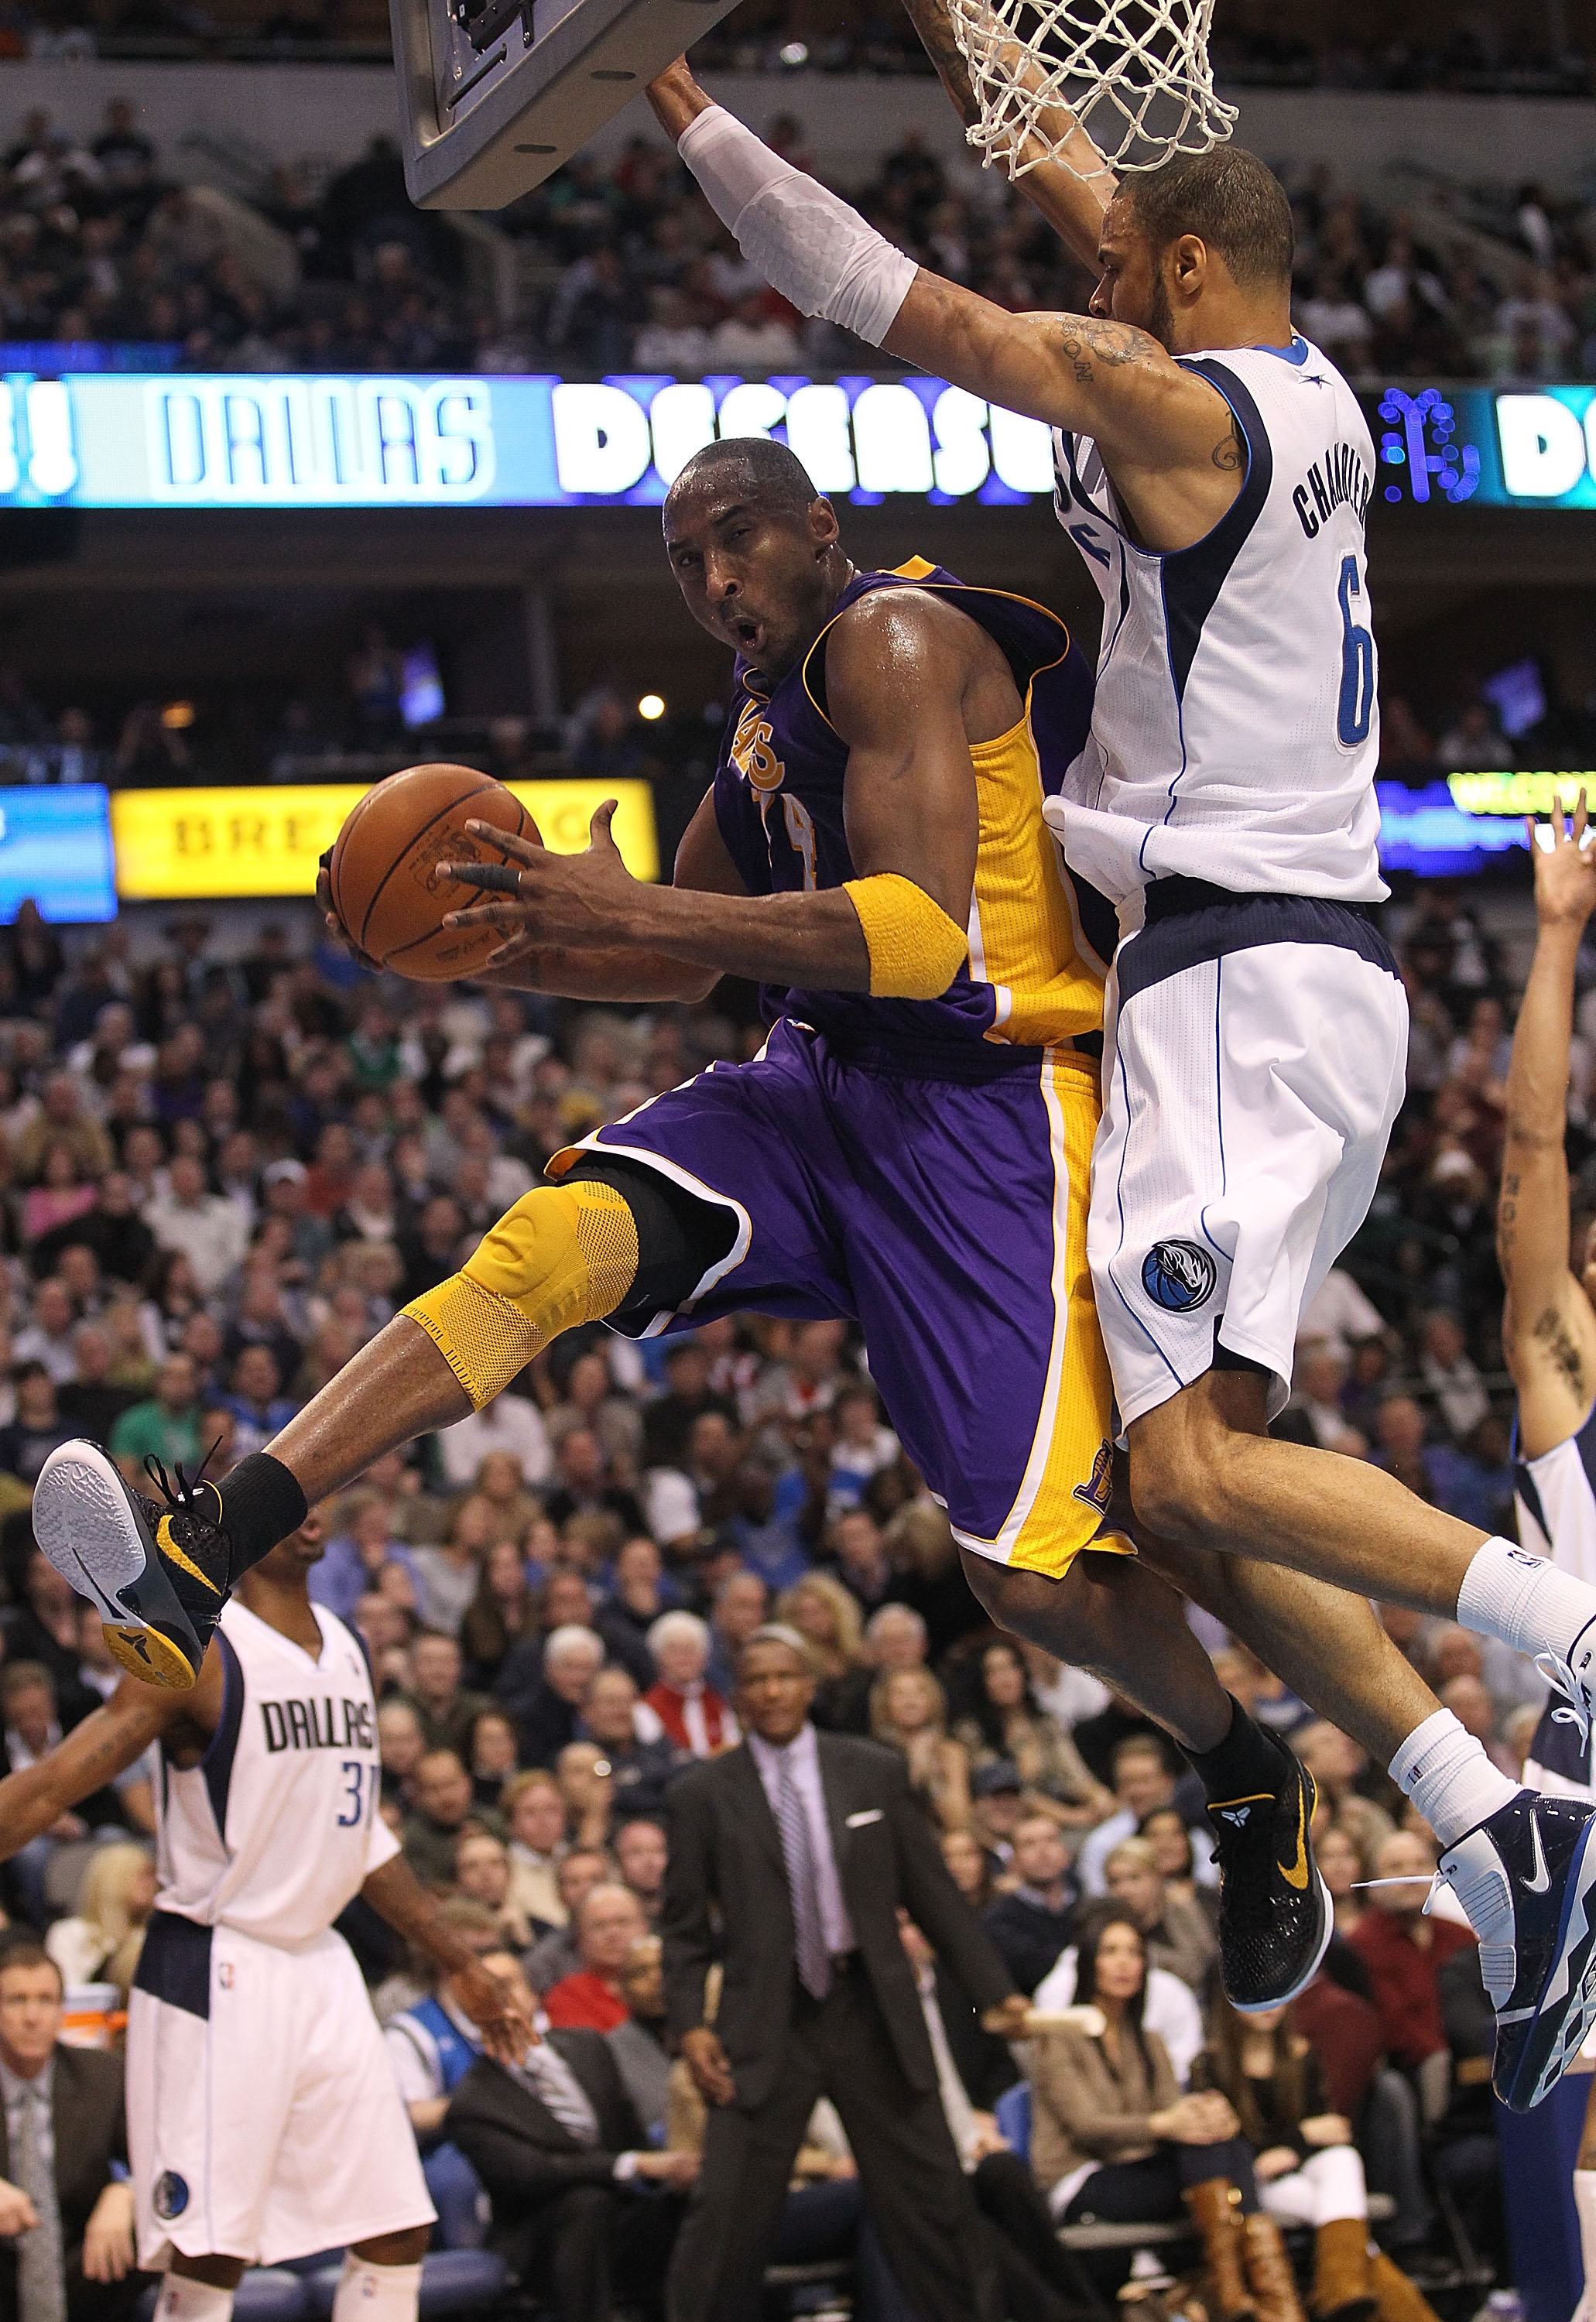 DALLAS, TX - JANUARY 19:  Guard Kobe Bryant #24 of the Los Angeles Lakers takes a shot against Tyson Chandler #6 of the Dallas Mavericks at American Airlines Center on January 19, 2011 in Dallas, Texas.  NOTE TO USER: User expressly acknowledges and agree